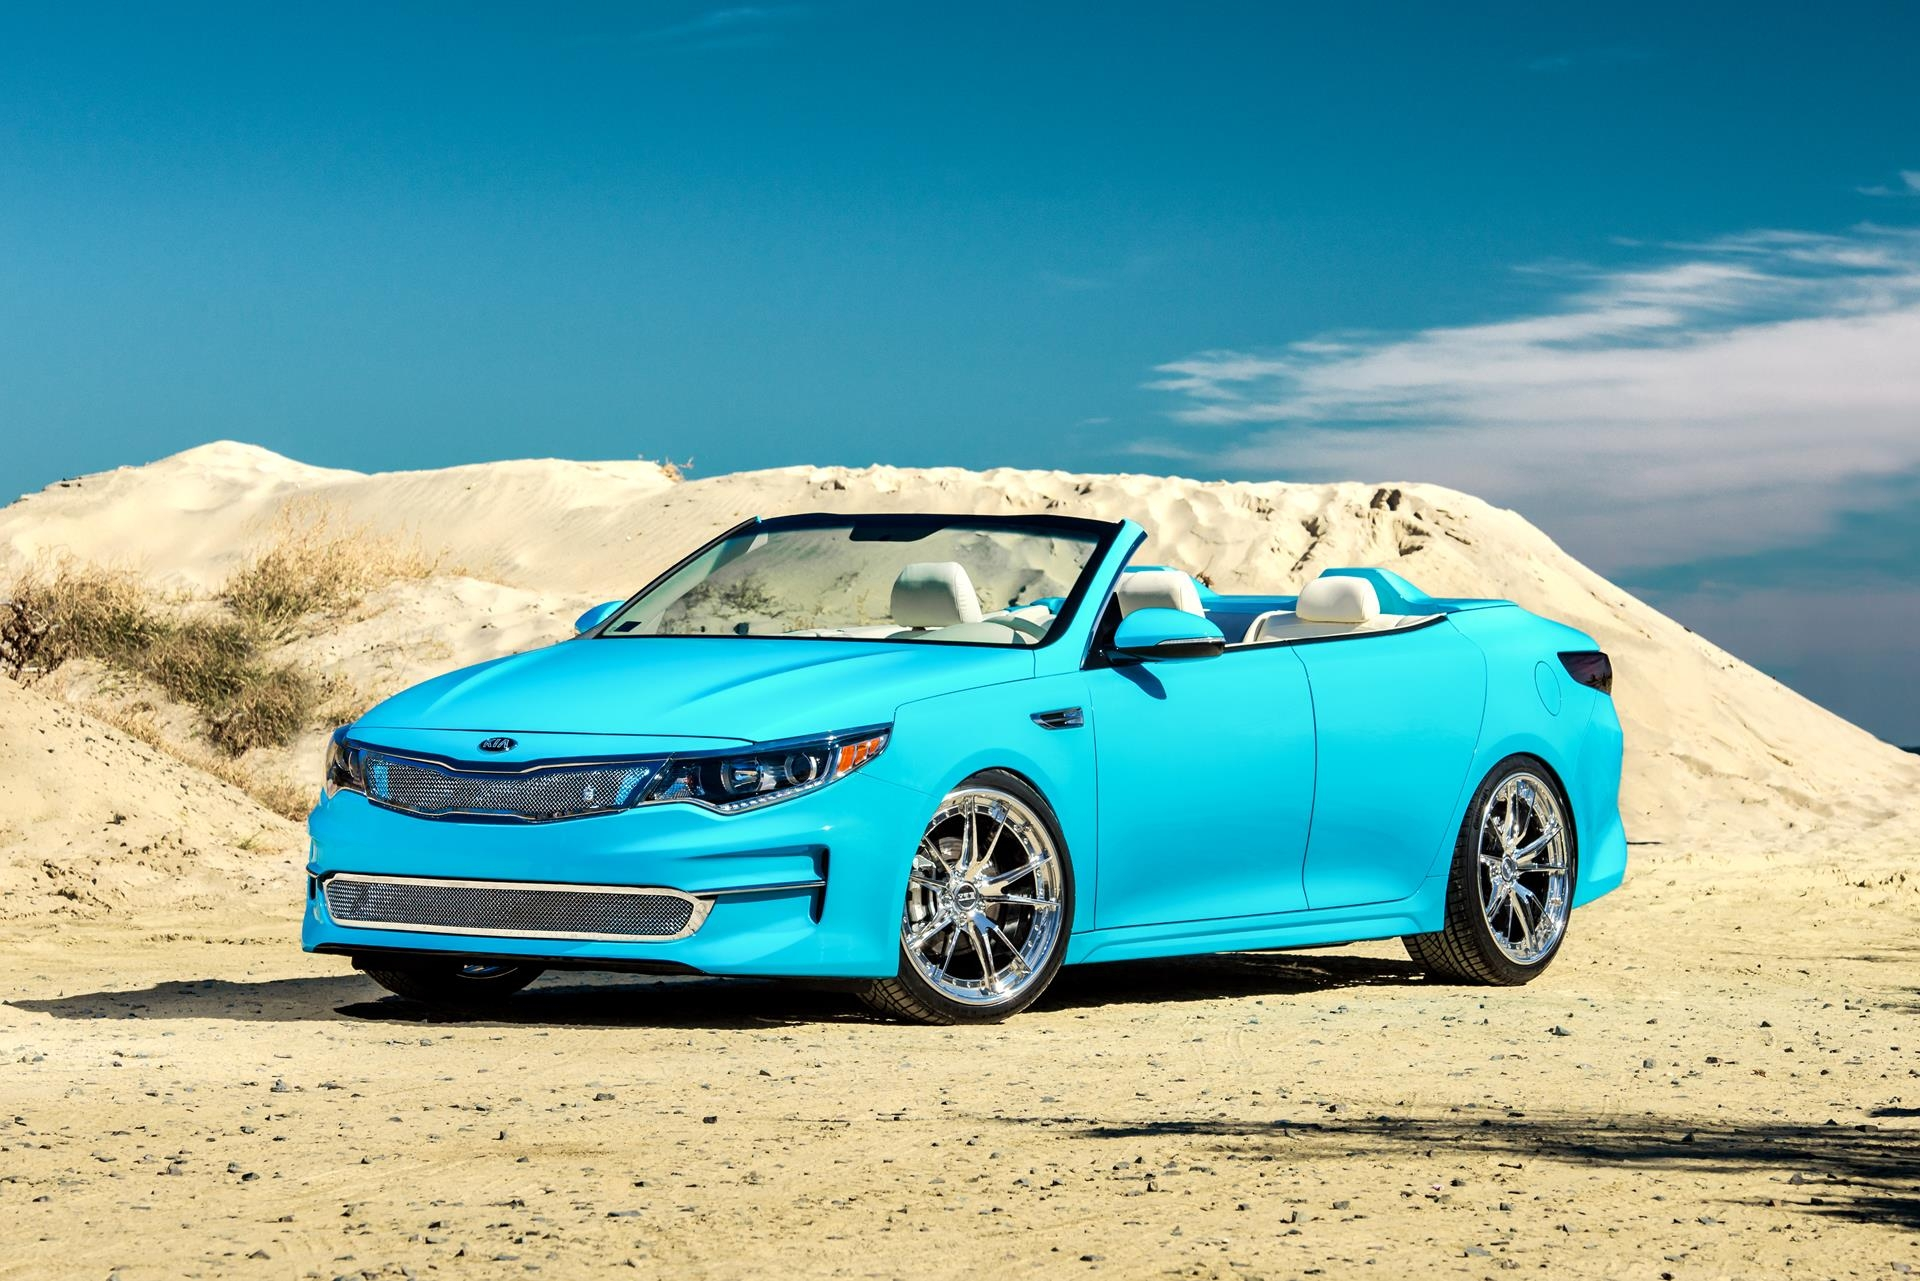 88 All New 2020 Kia Optima Reviews